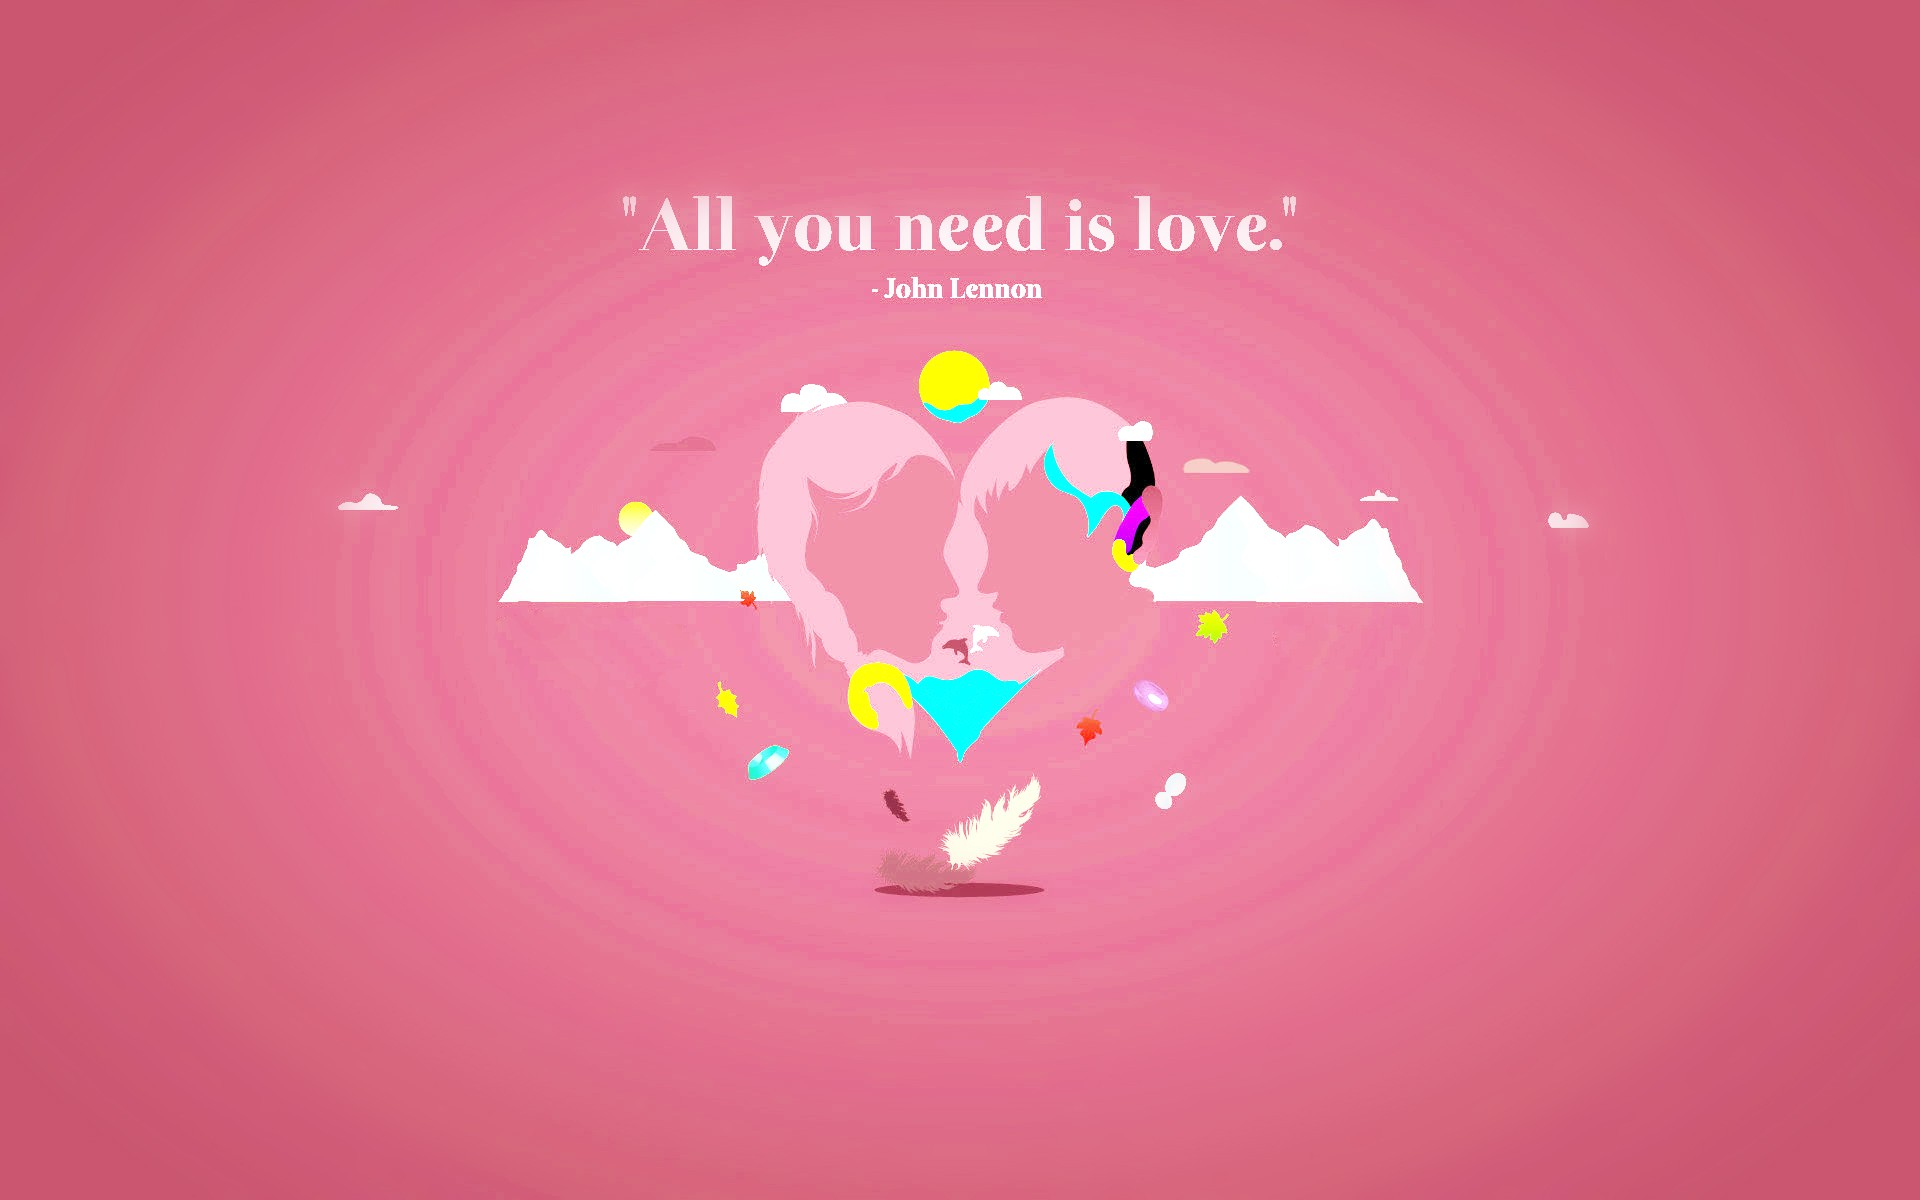 Hd wallpaper you need - All You Need Is Love Valentines Hd Wallpaper New Hd Wallpapers